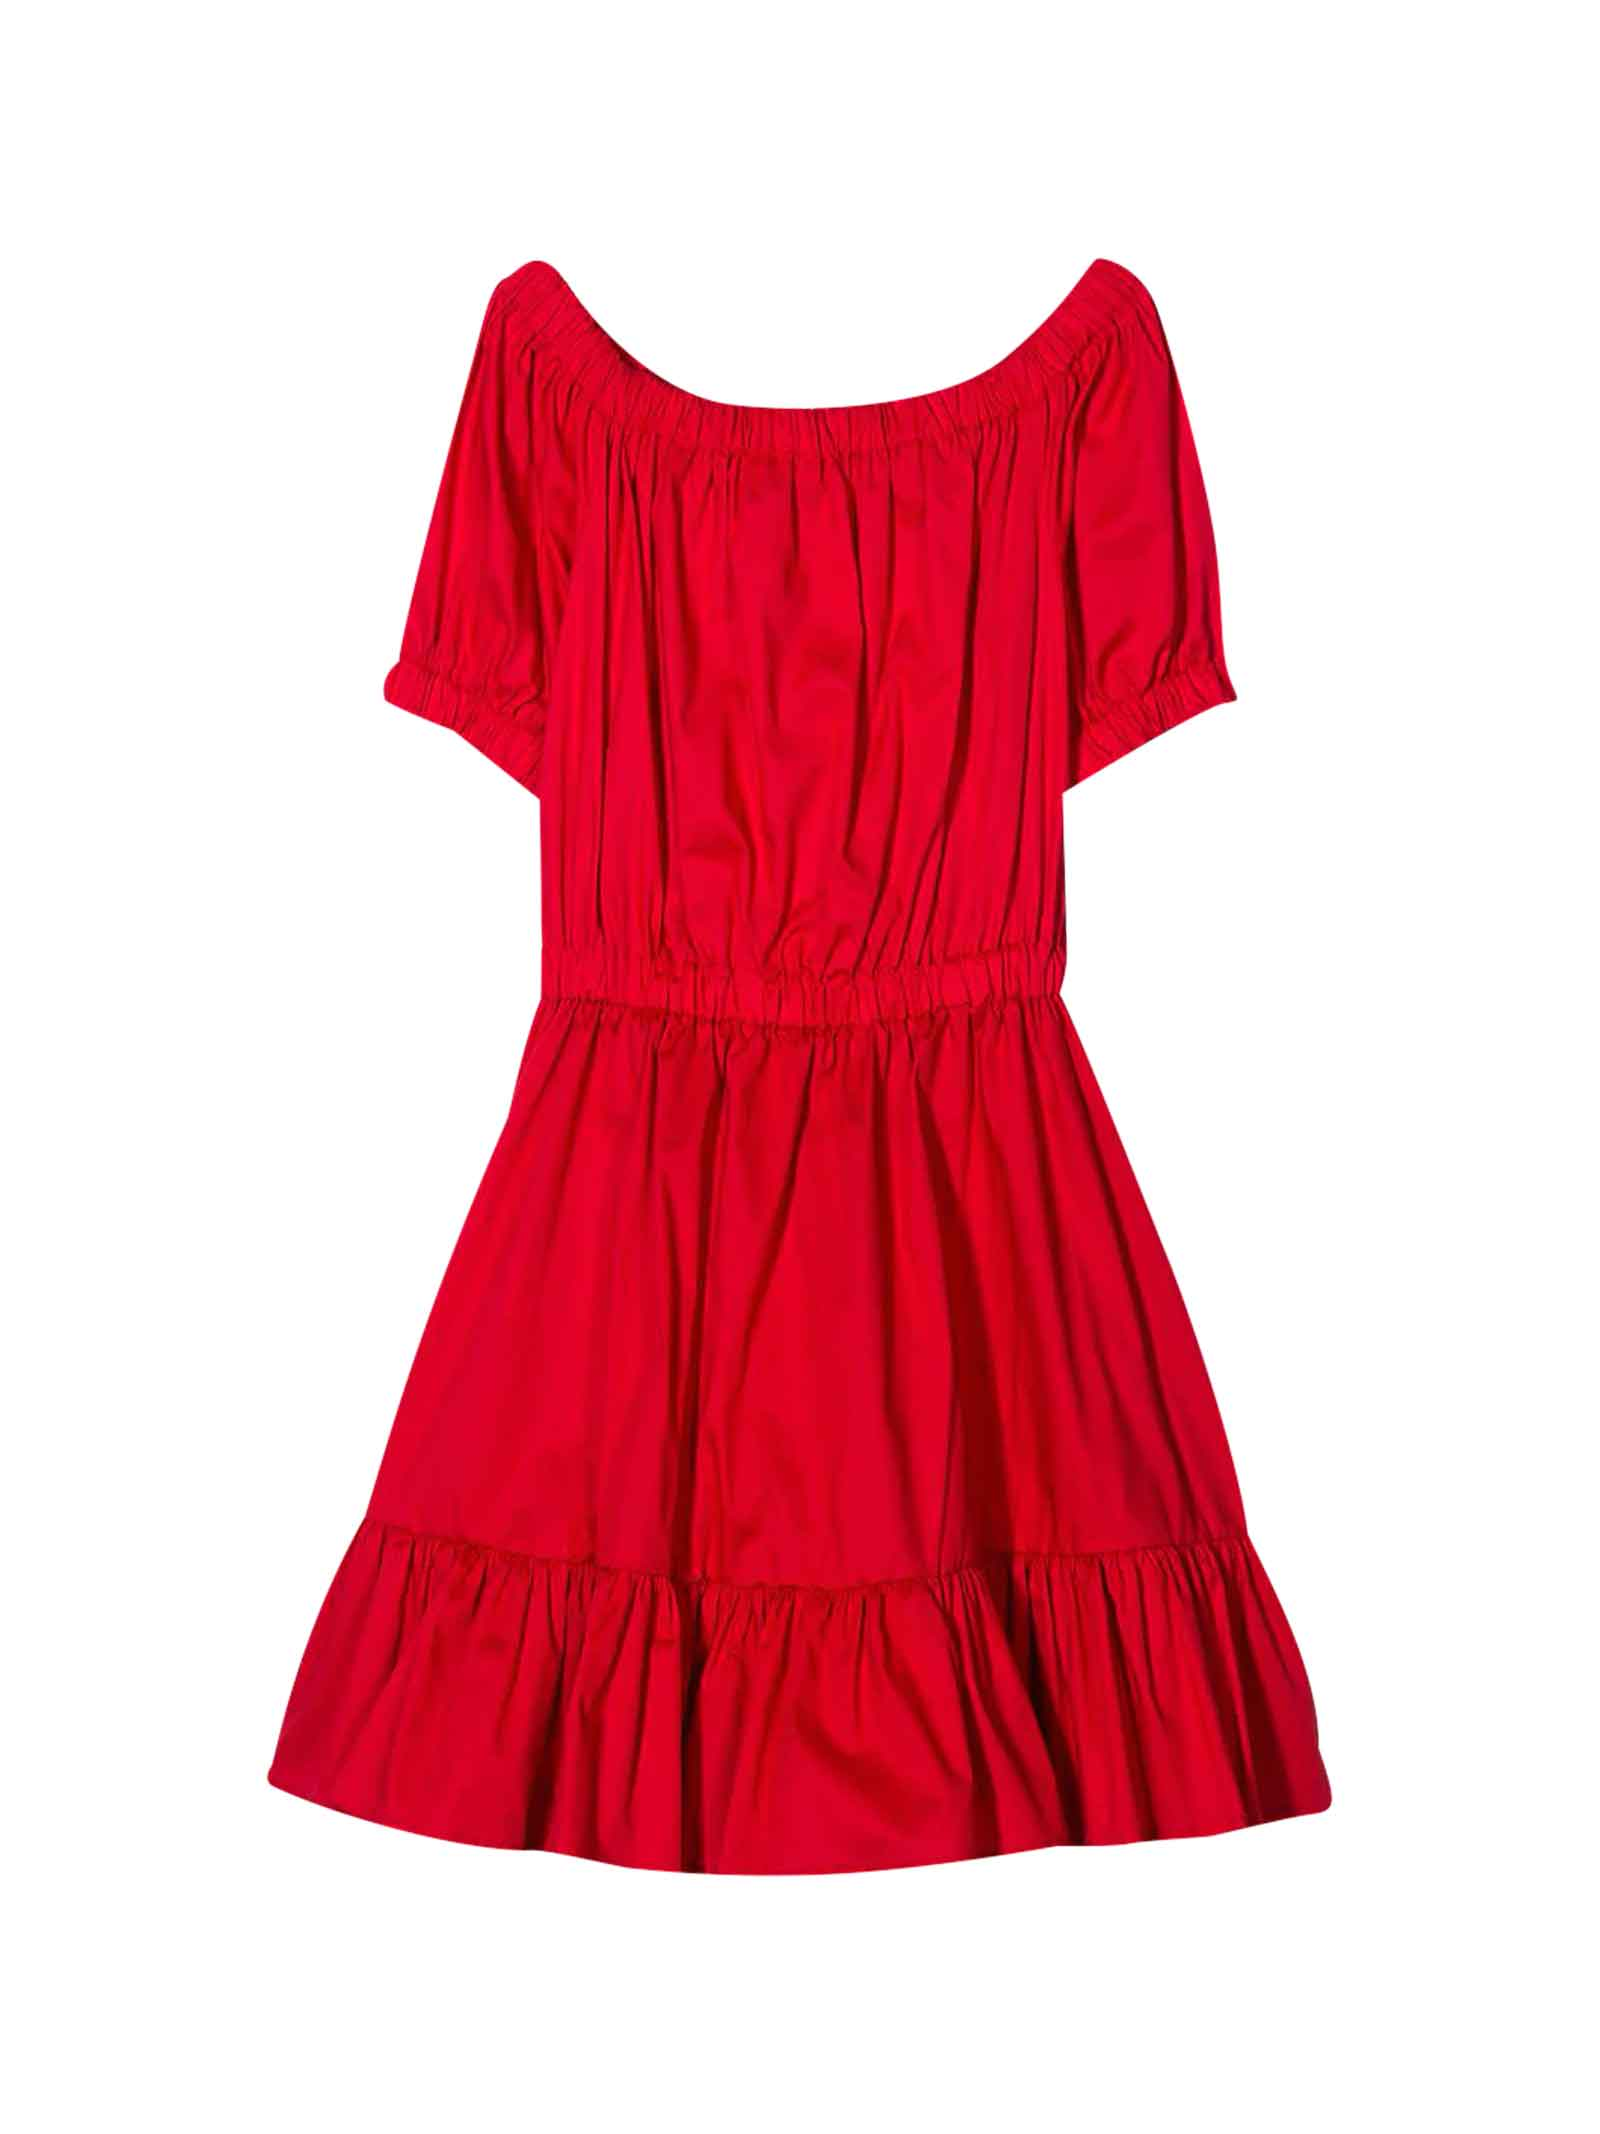 Buy Piccola Ludo Red Dress online, shop Piccola Ludo with free shipping